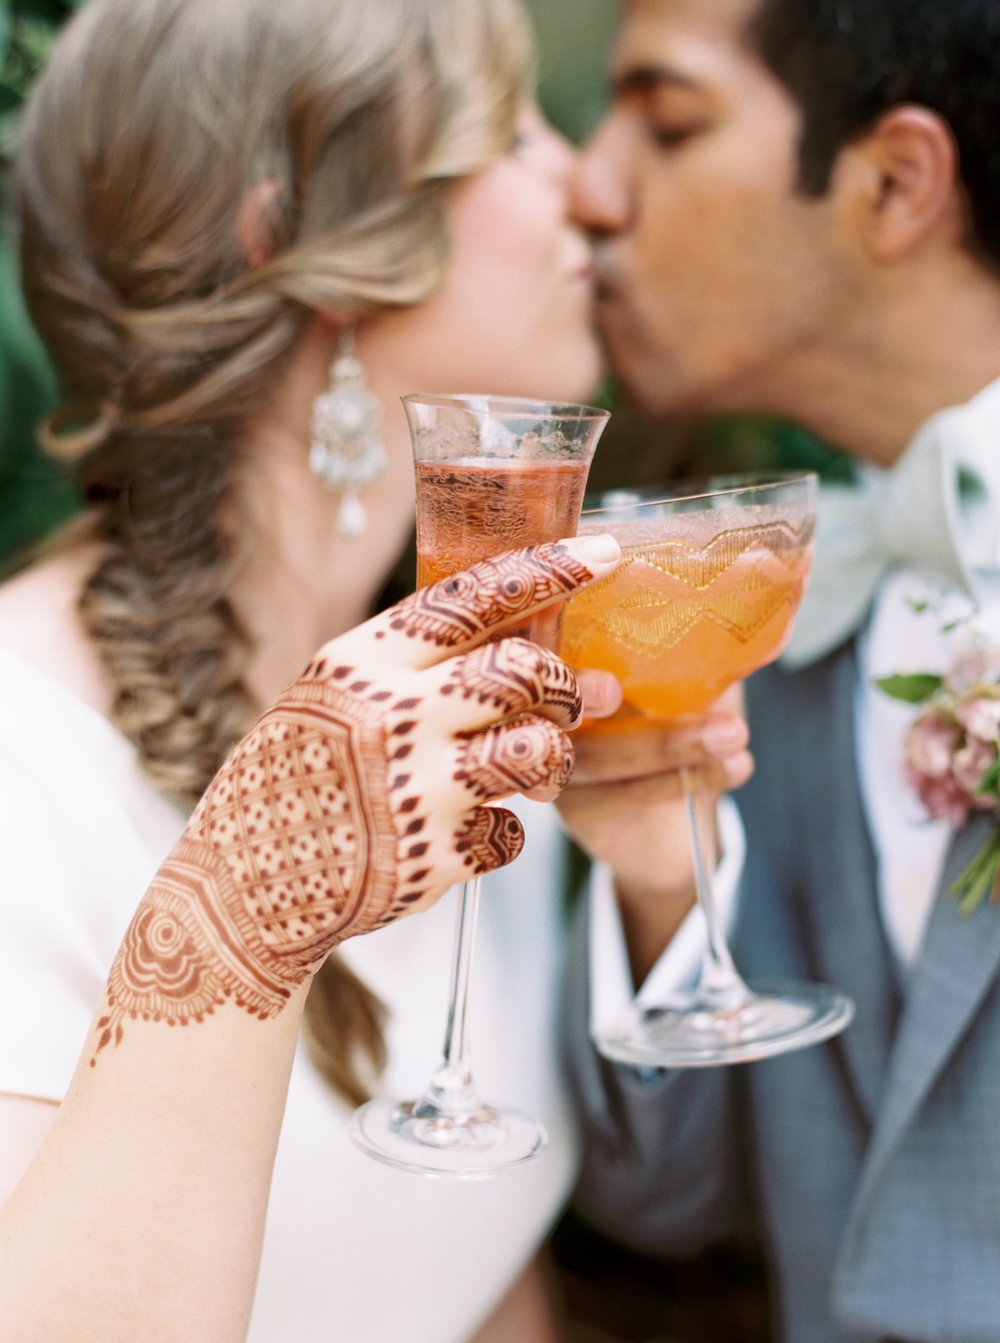 Wahoo_Grill_Atlanta_Indian_Wedding_Abigail_Malone_Photgoraphy_FIlm-148.jpg